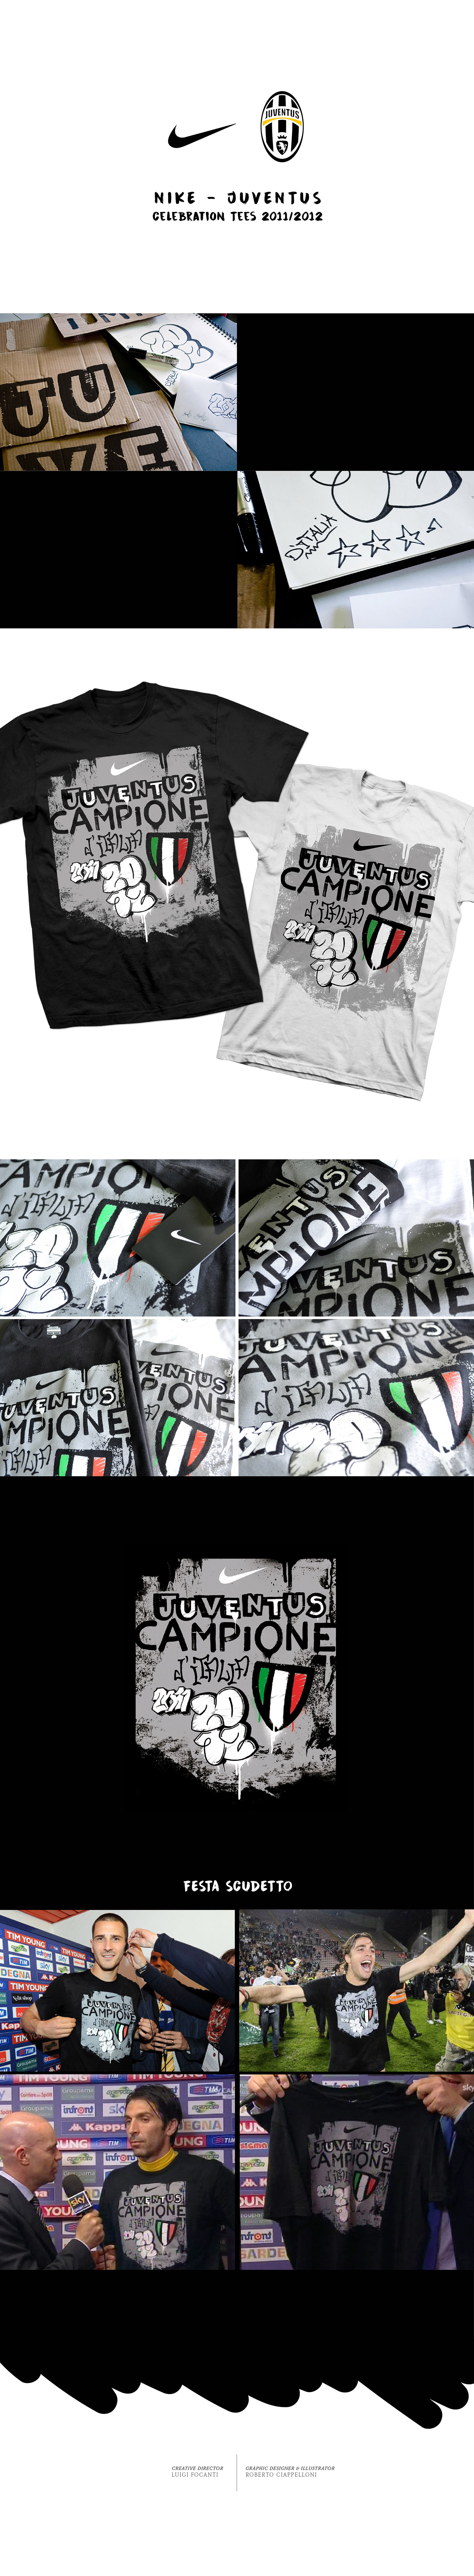 NIKE - JUVENTUS celebration tees